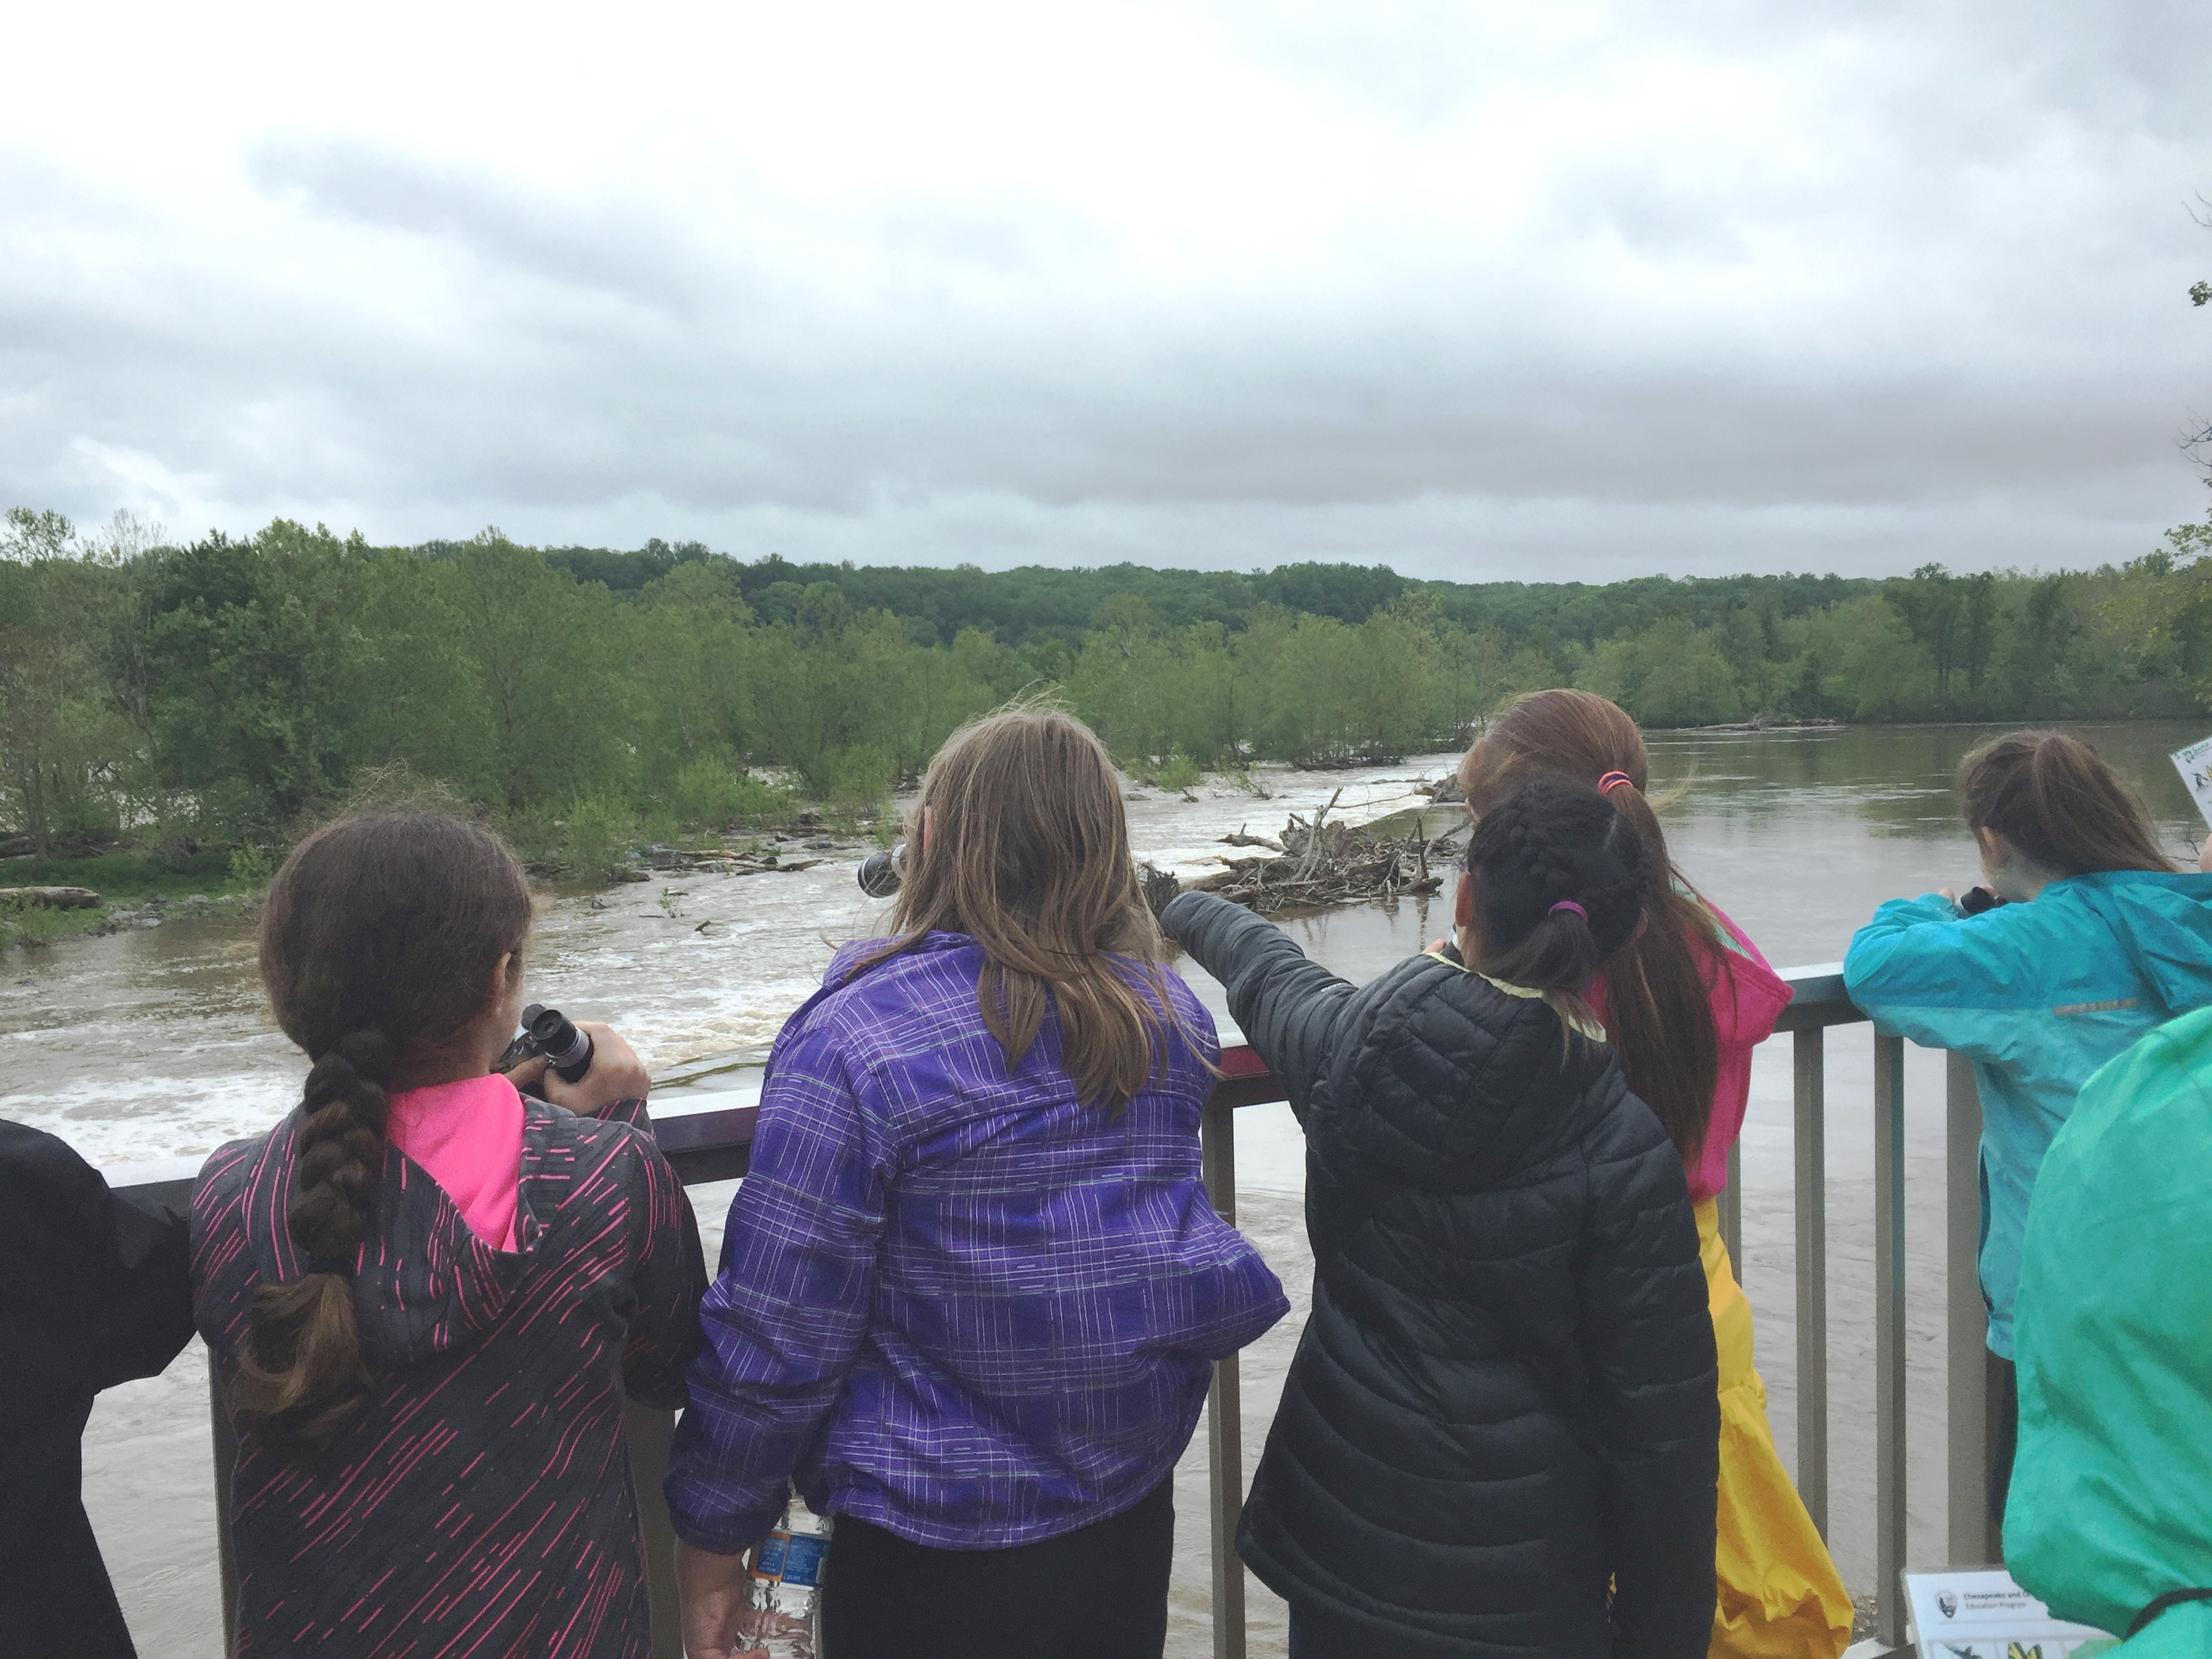 Kids at Great Falls Looking out over the Potomac